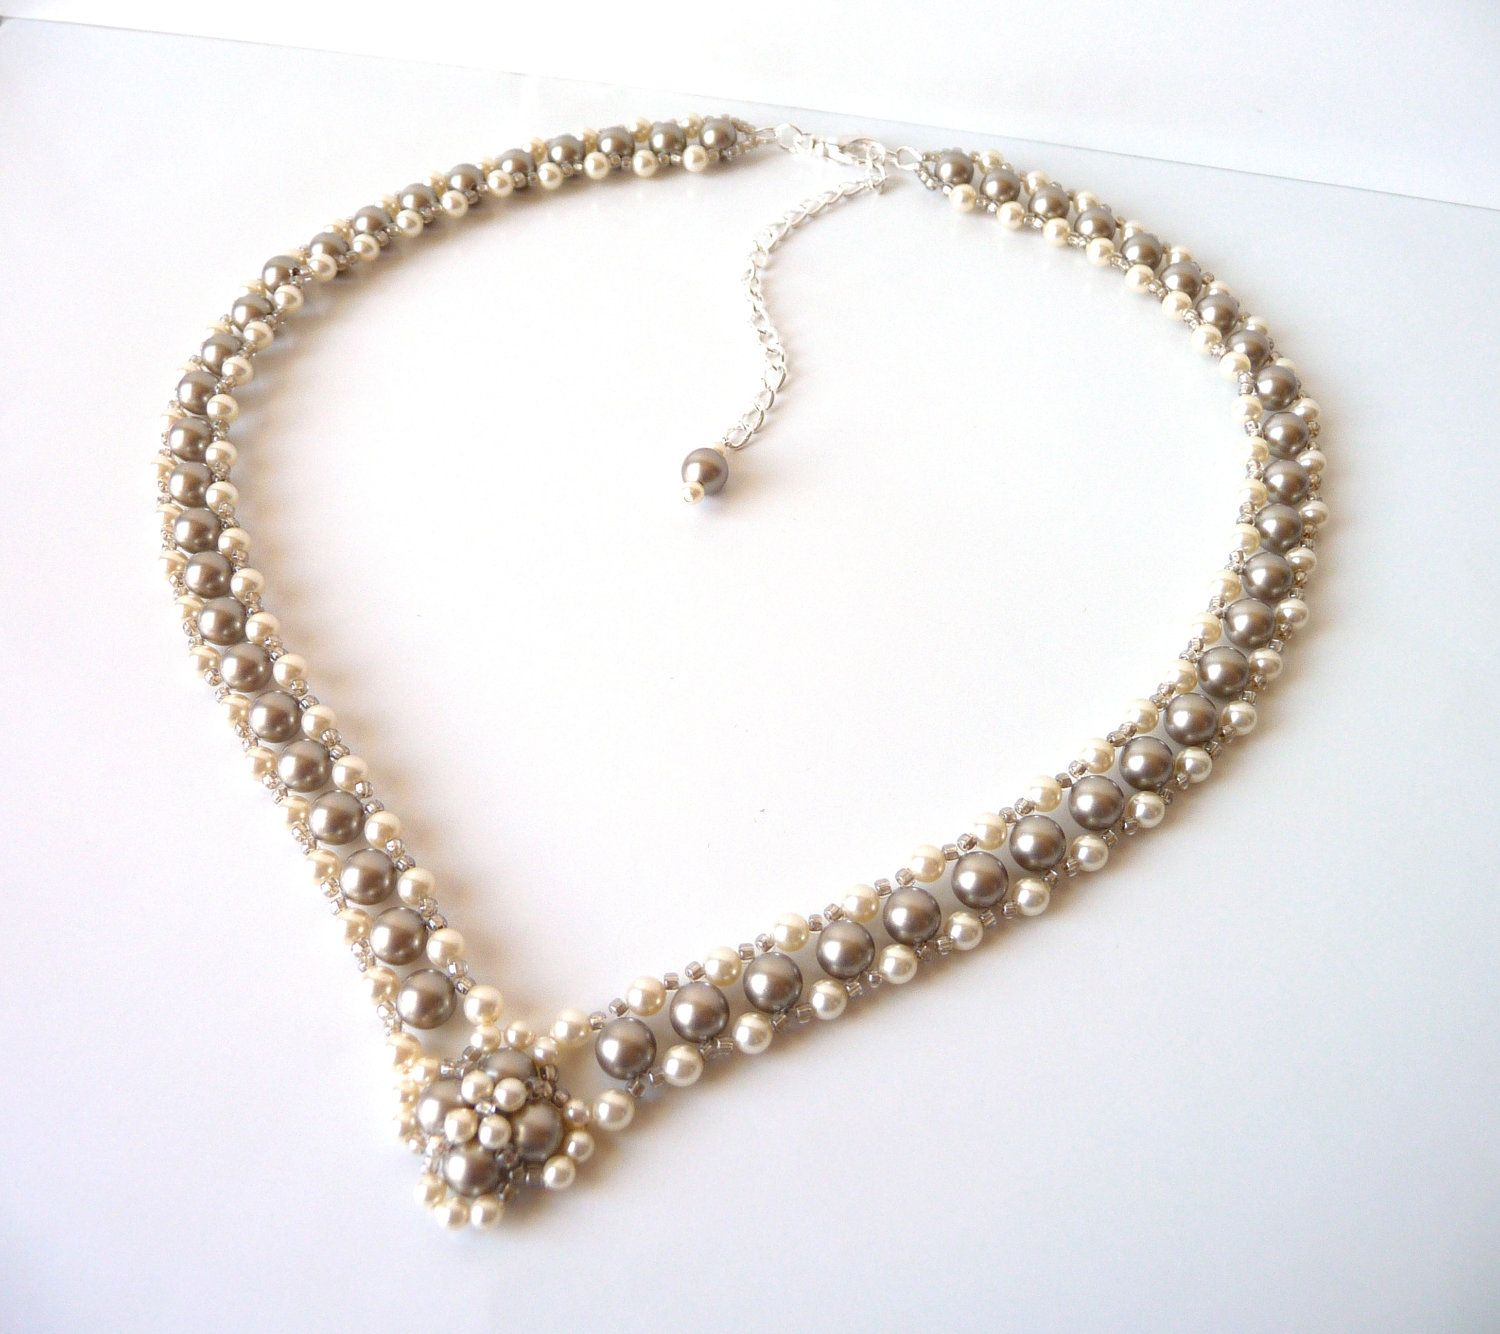 Image detail for -Pearl Bridal Necklace, Champagne Wedding Bridal Jewelry, Bridesmaid, V ...